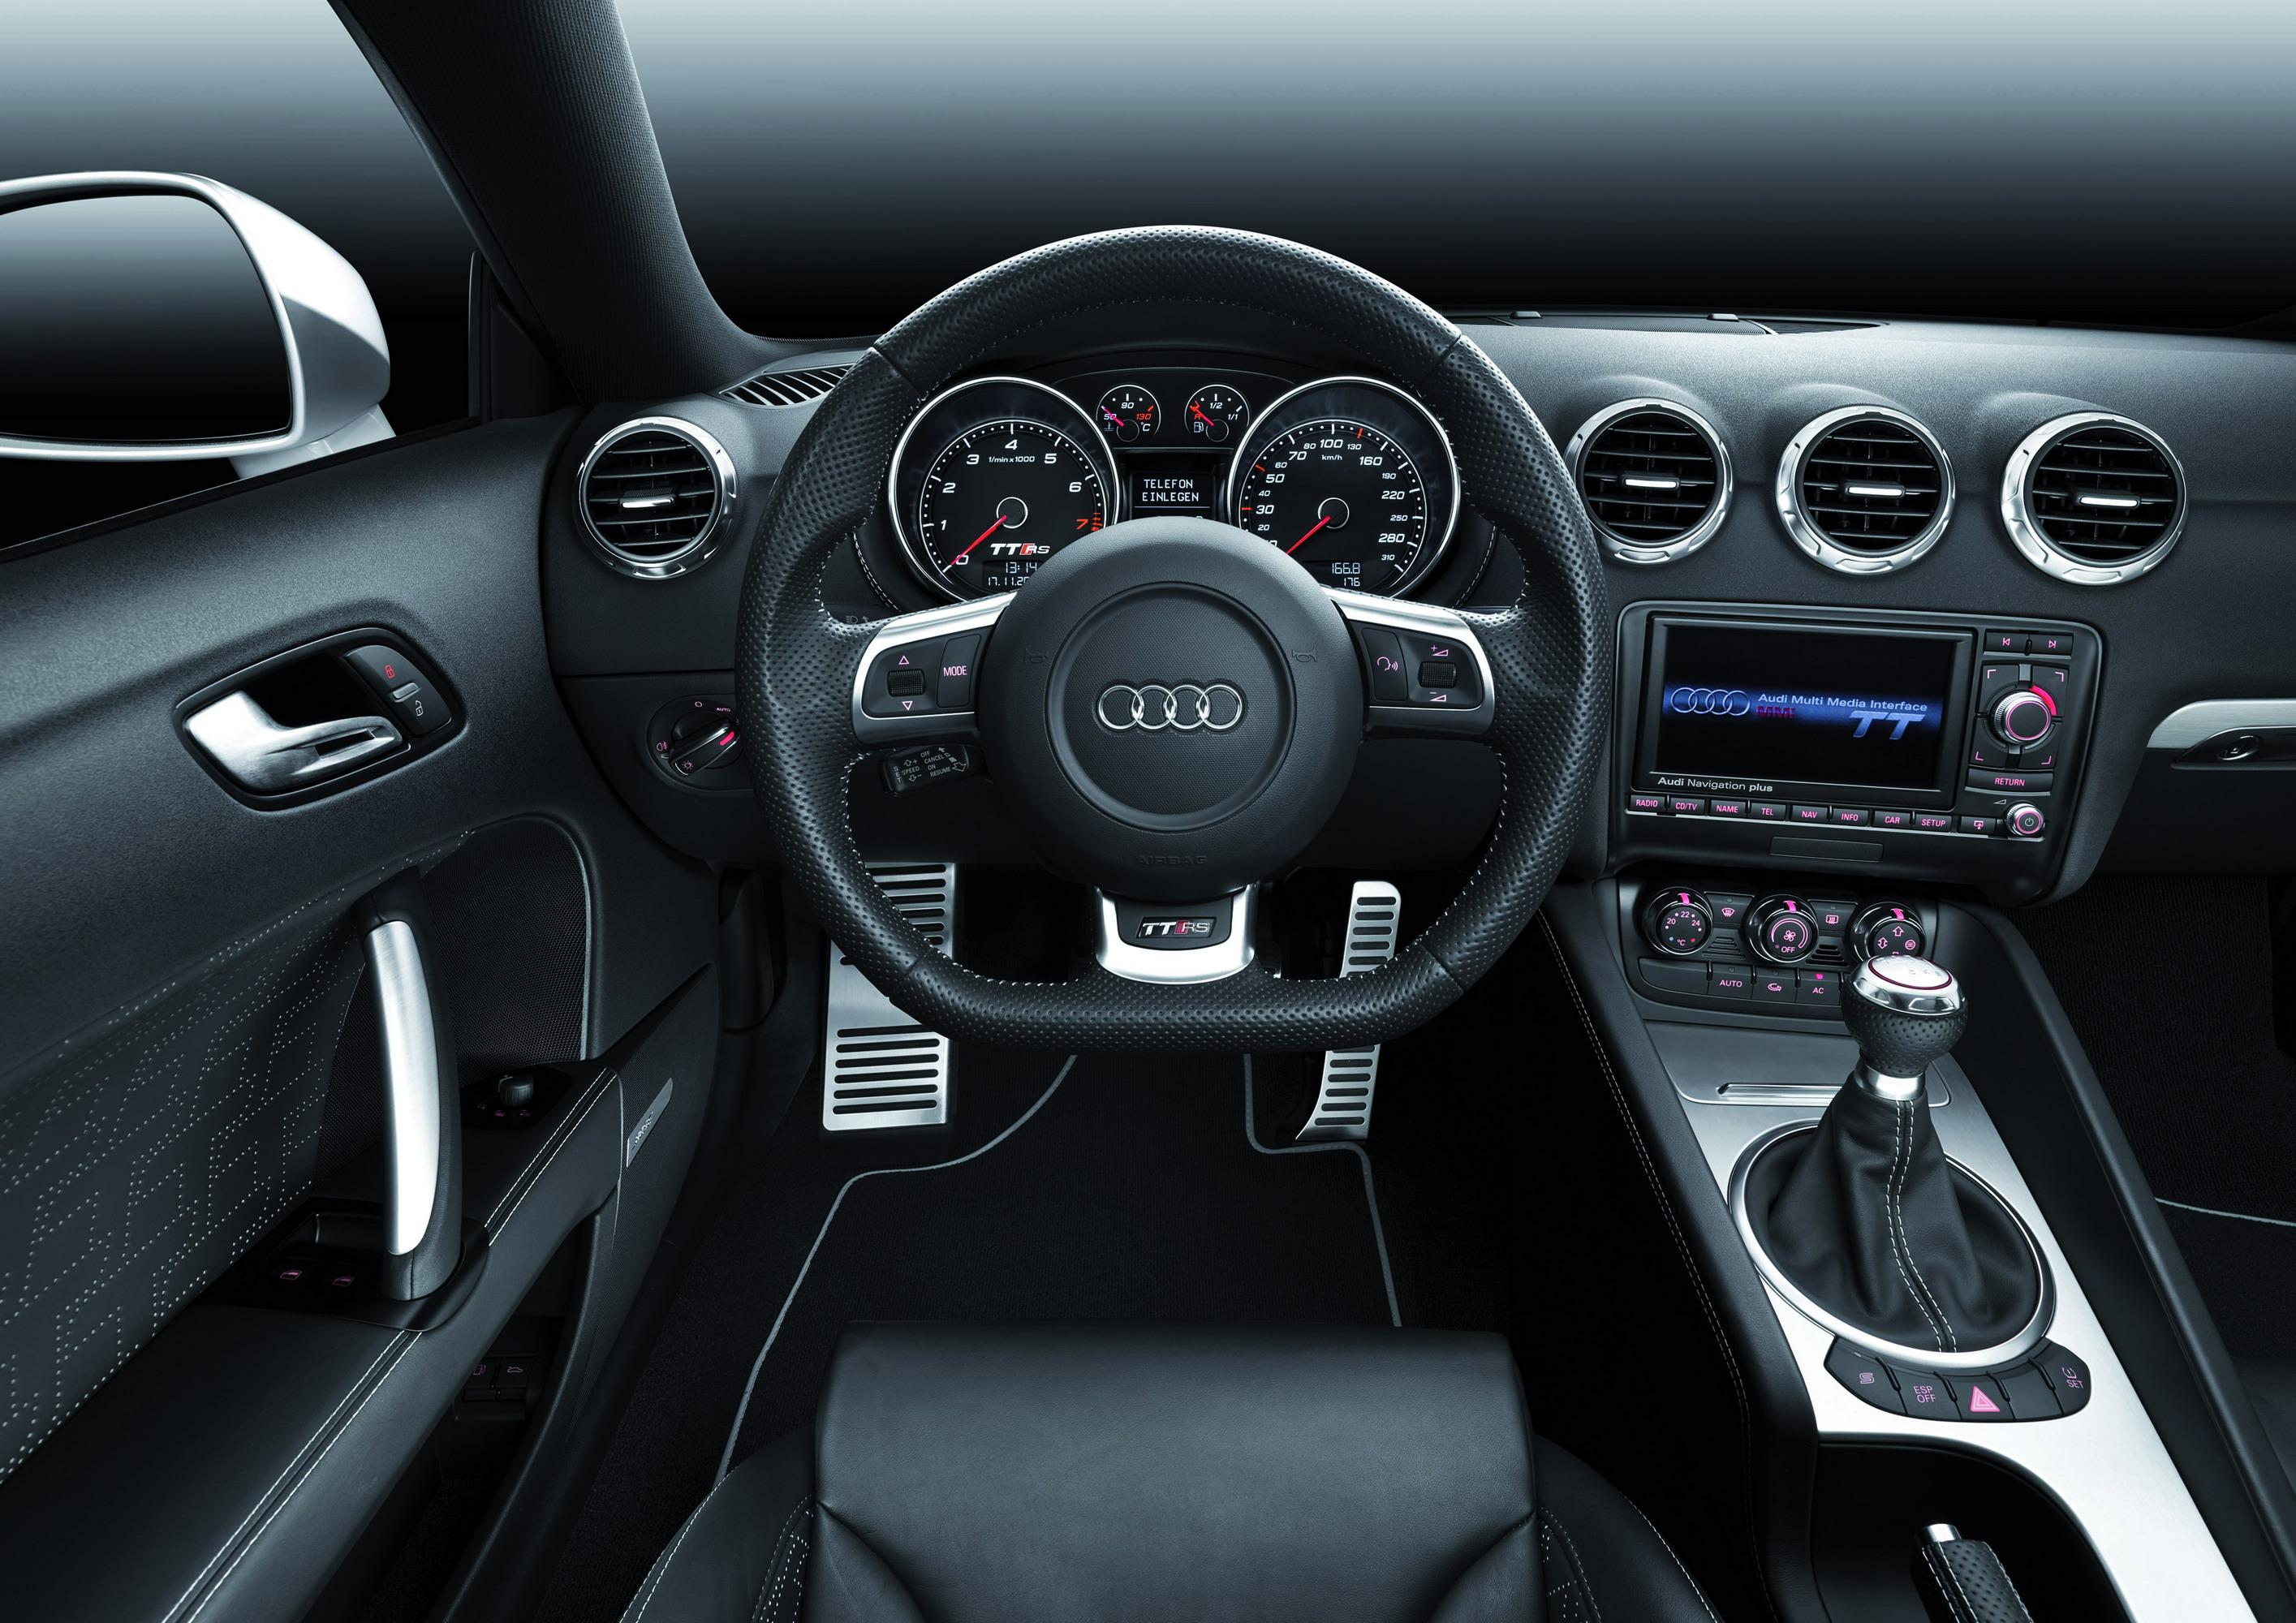 2010 audi tt rs review - top speed